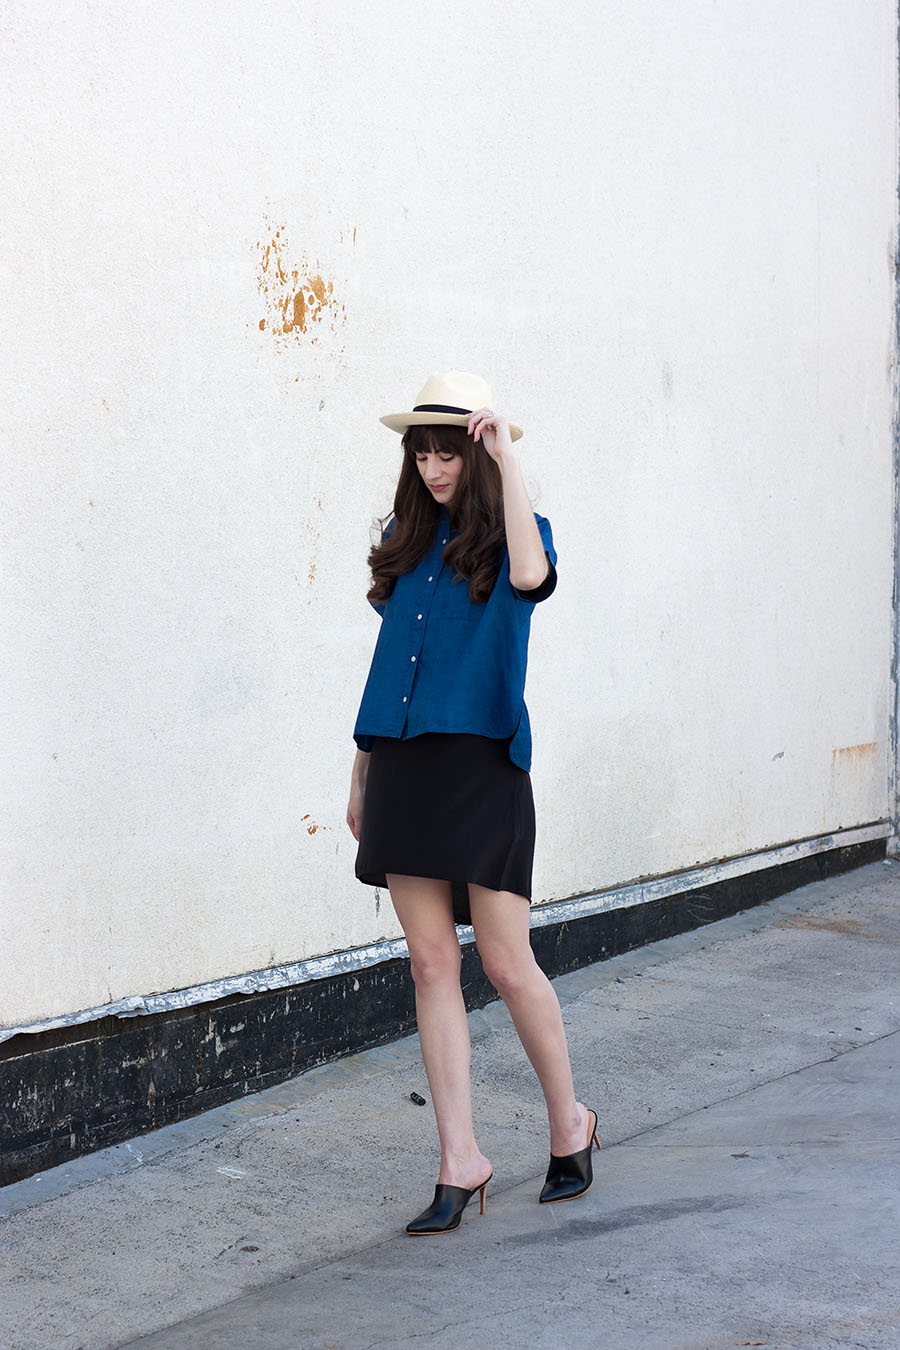 Everlane Linen Shirt, Everlane Silk Dress, Marias Mules, J.Crew Panama Hat, Summer Outfit